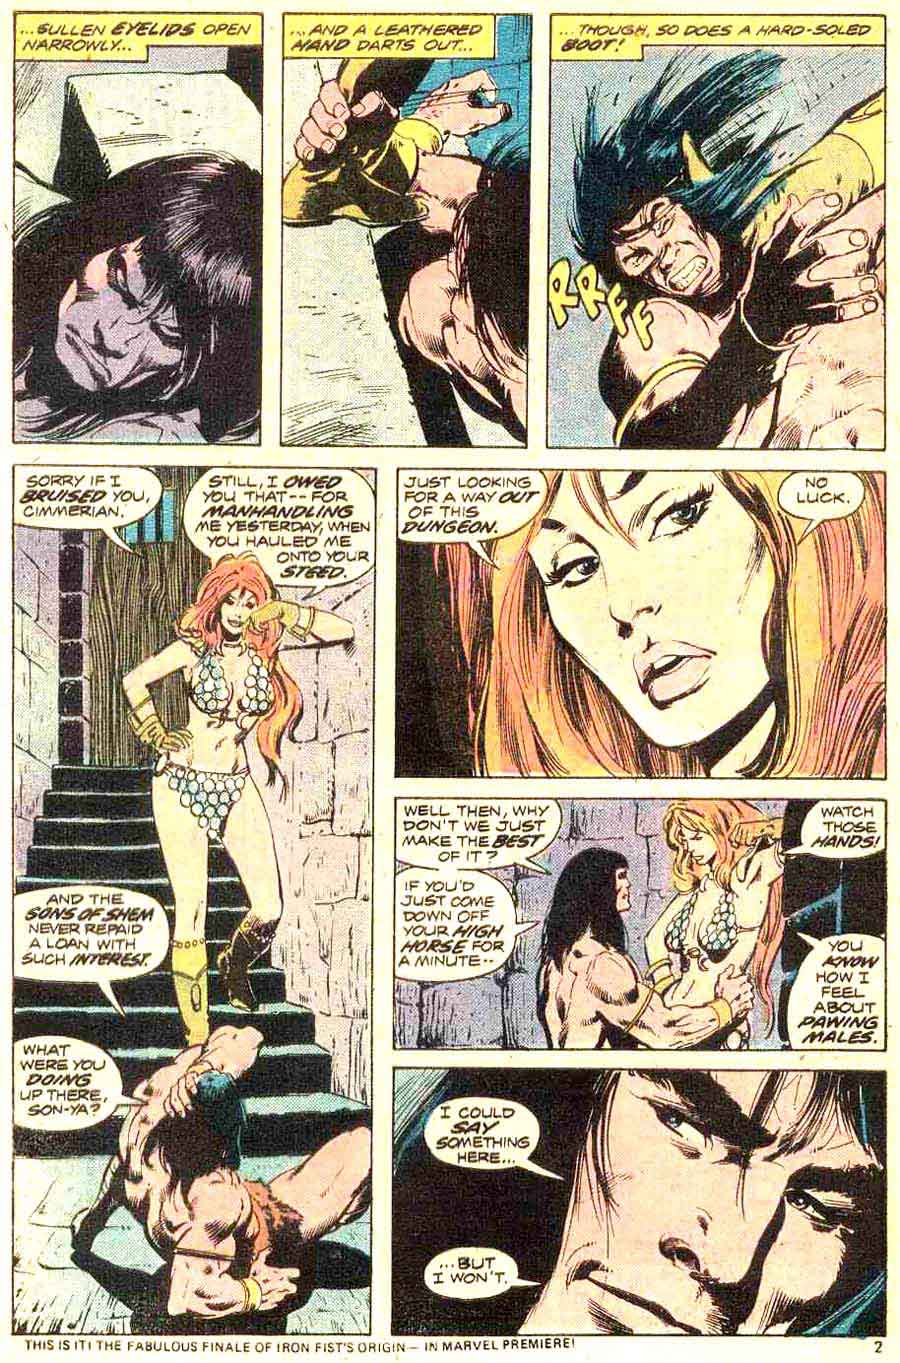 Conan the Barbarian v1 #44 marvel comic book page art by Neal Adams